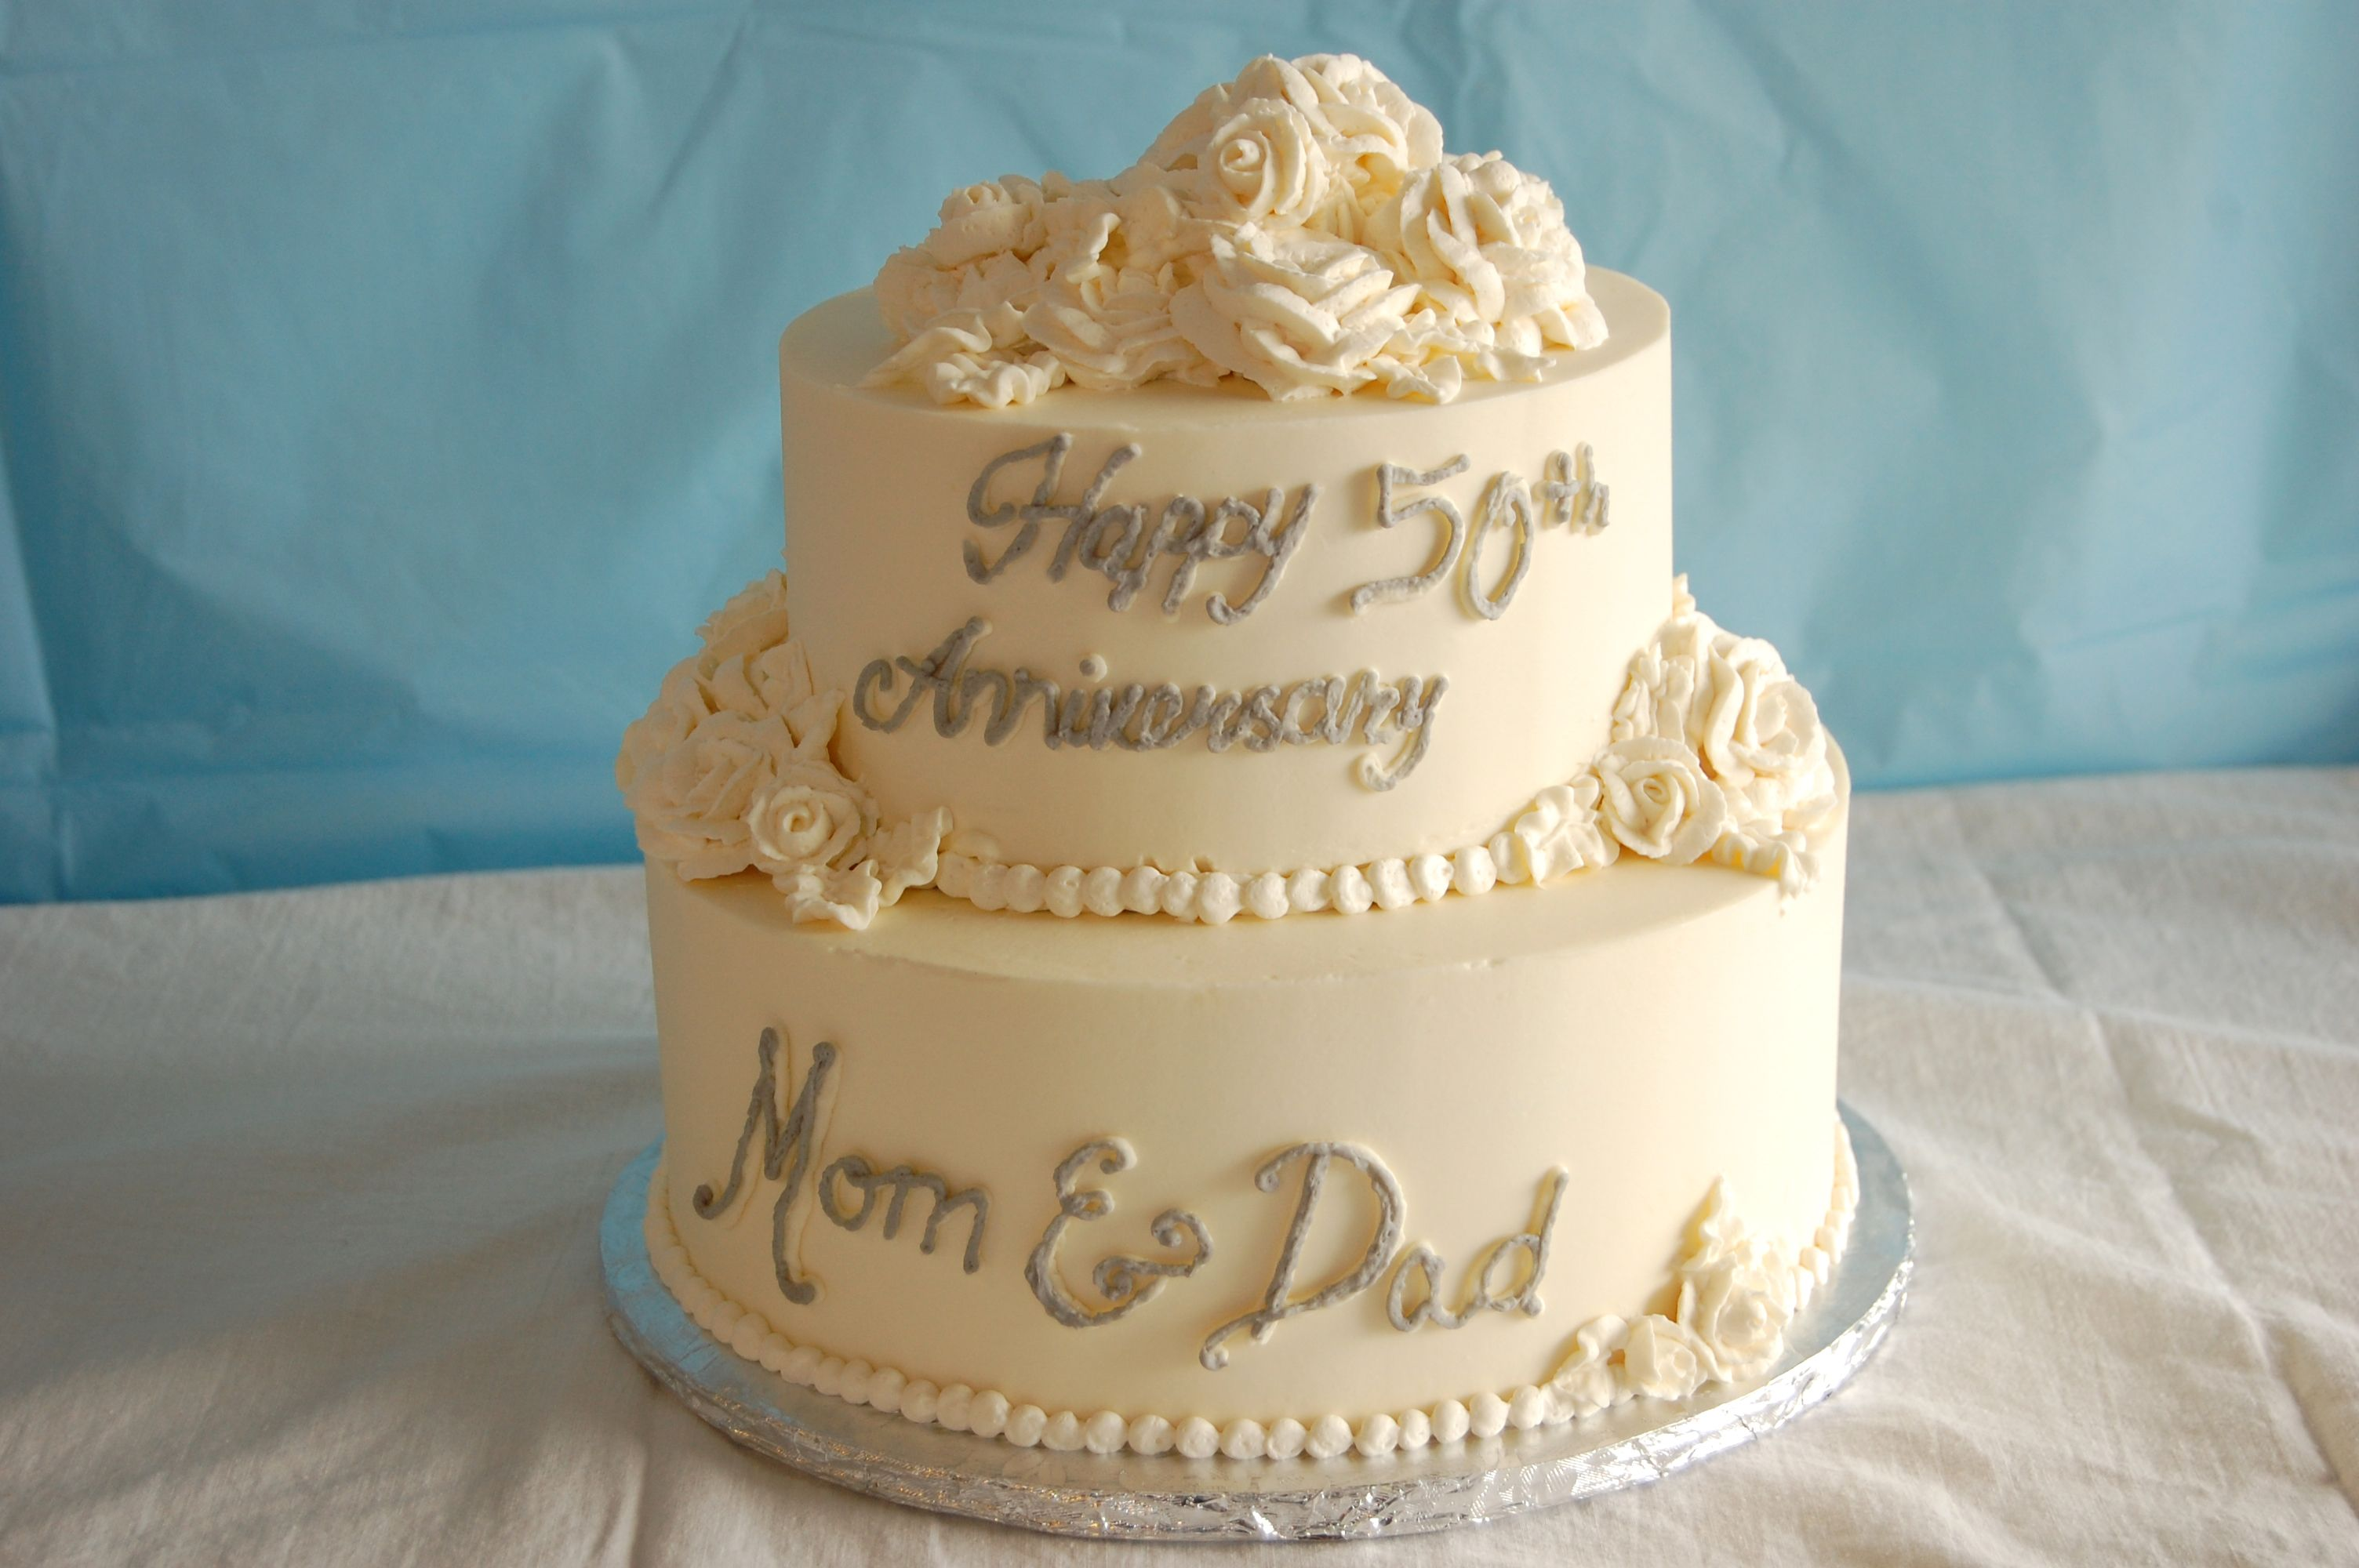 Pin By Erlina Wijaya On Wedding Cakes 50th Anniversary Cakes 50th Wedding Anniversary Cakes 50th Anniversary Celebration